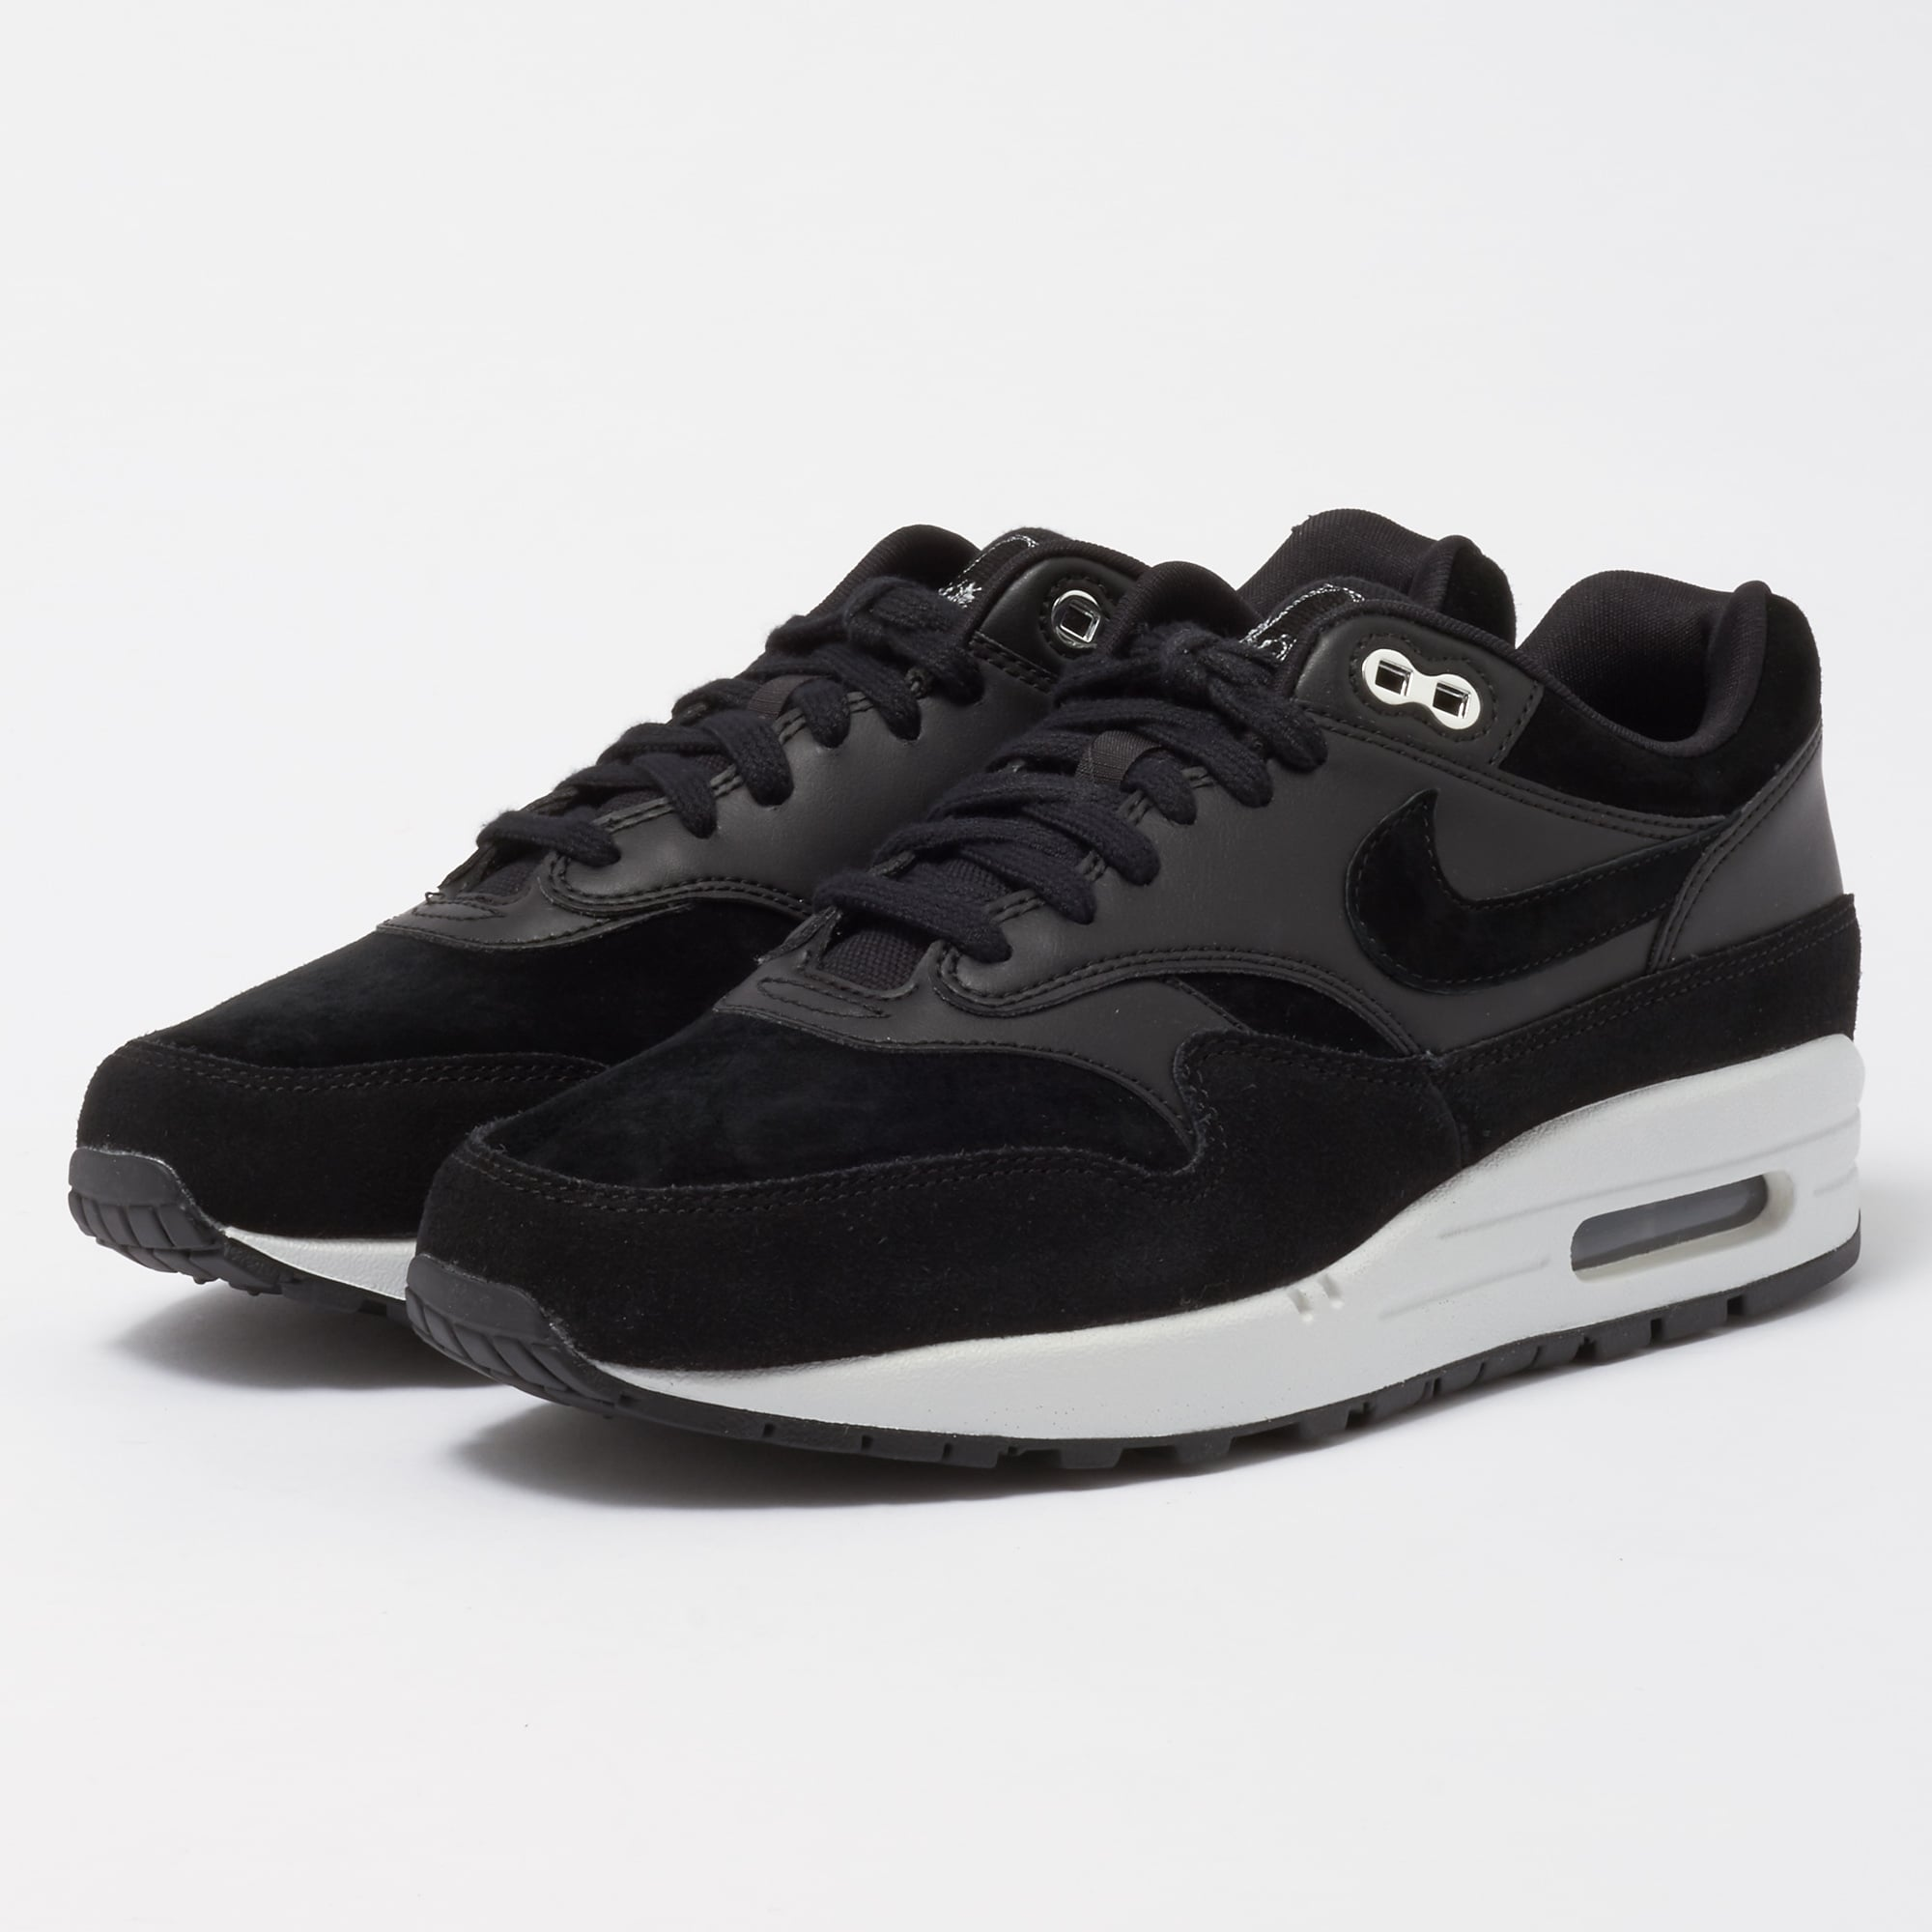 nike air max 1 rebel skulls nz